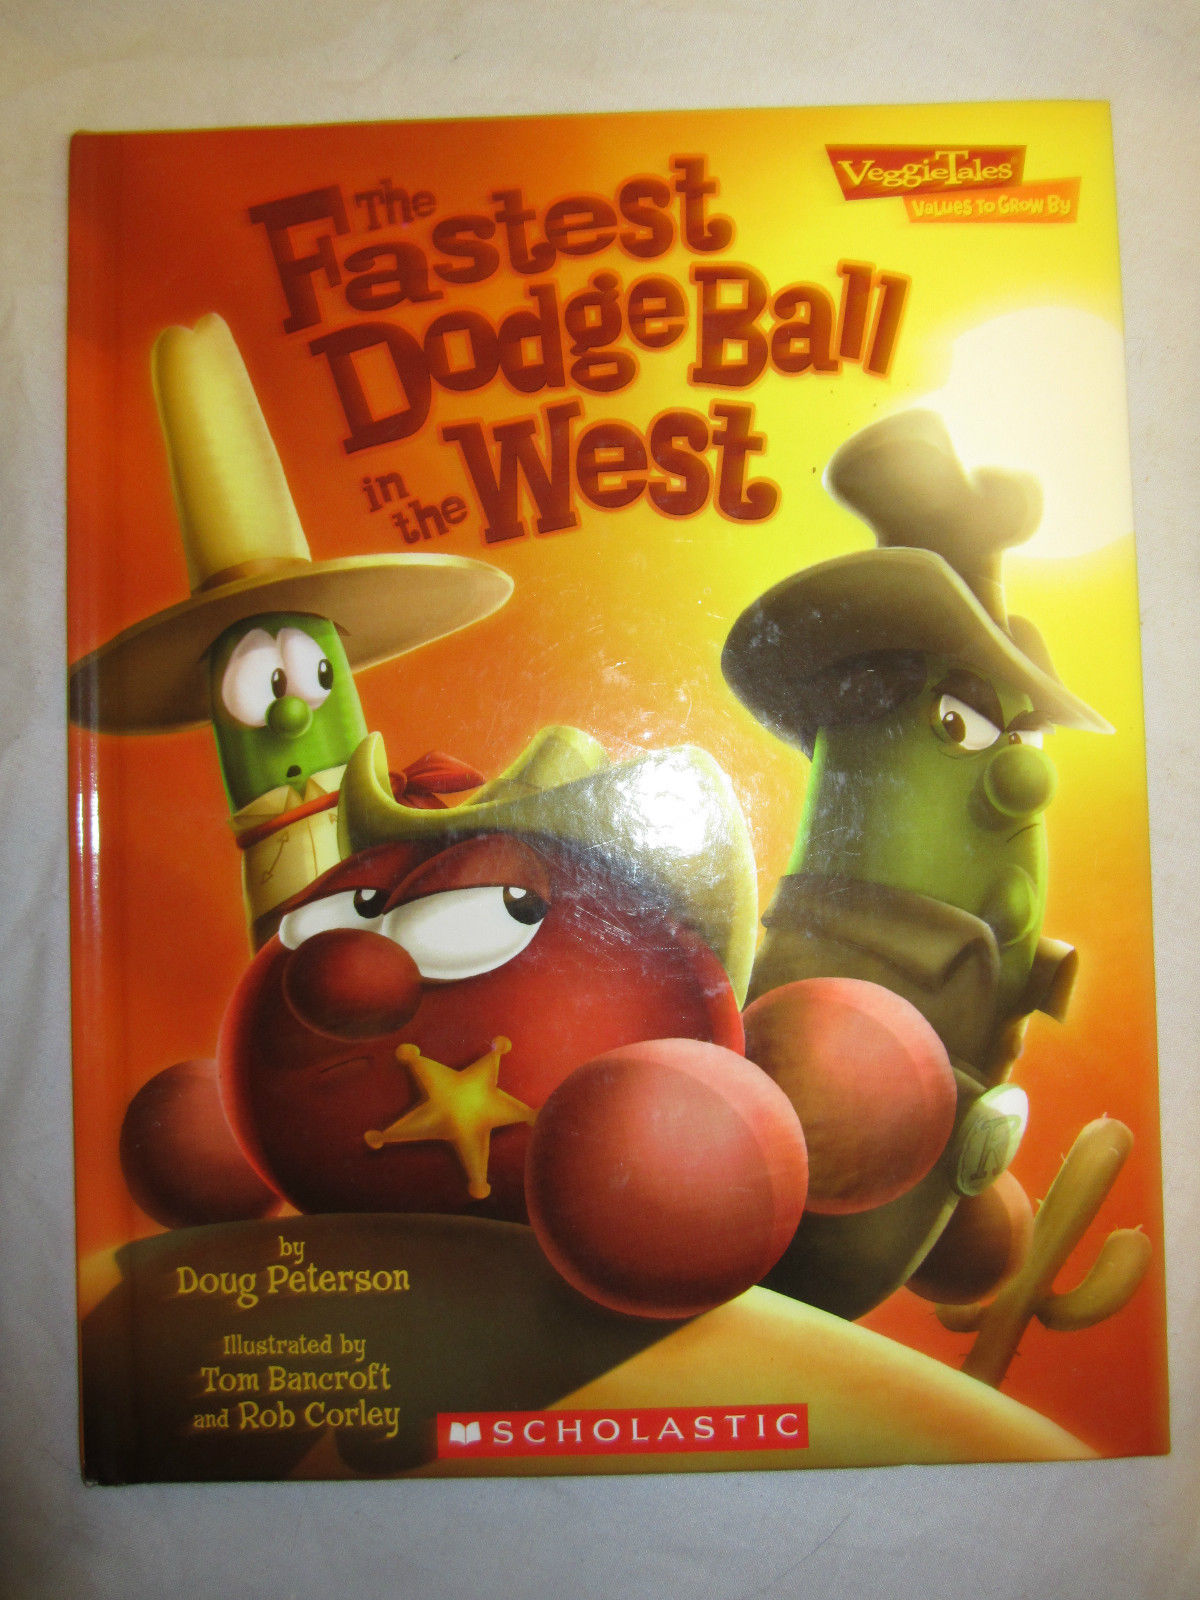 The Fastest Dodge Ball in the West